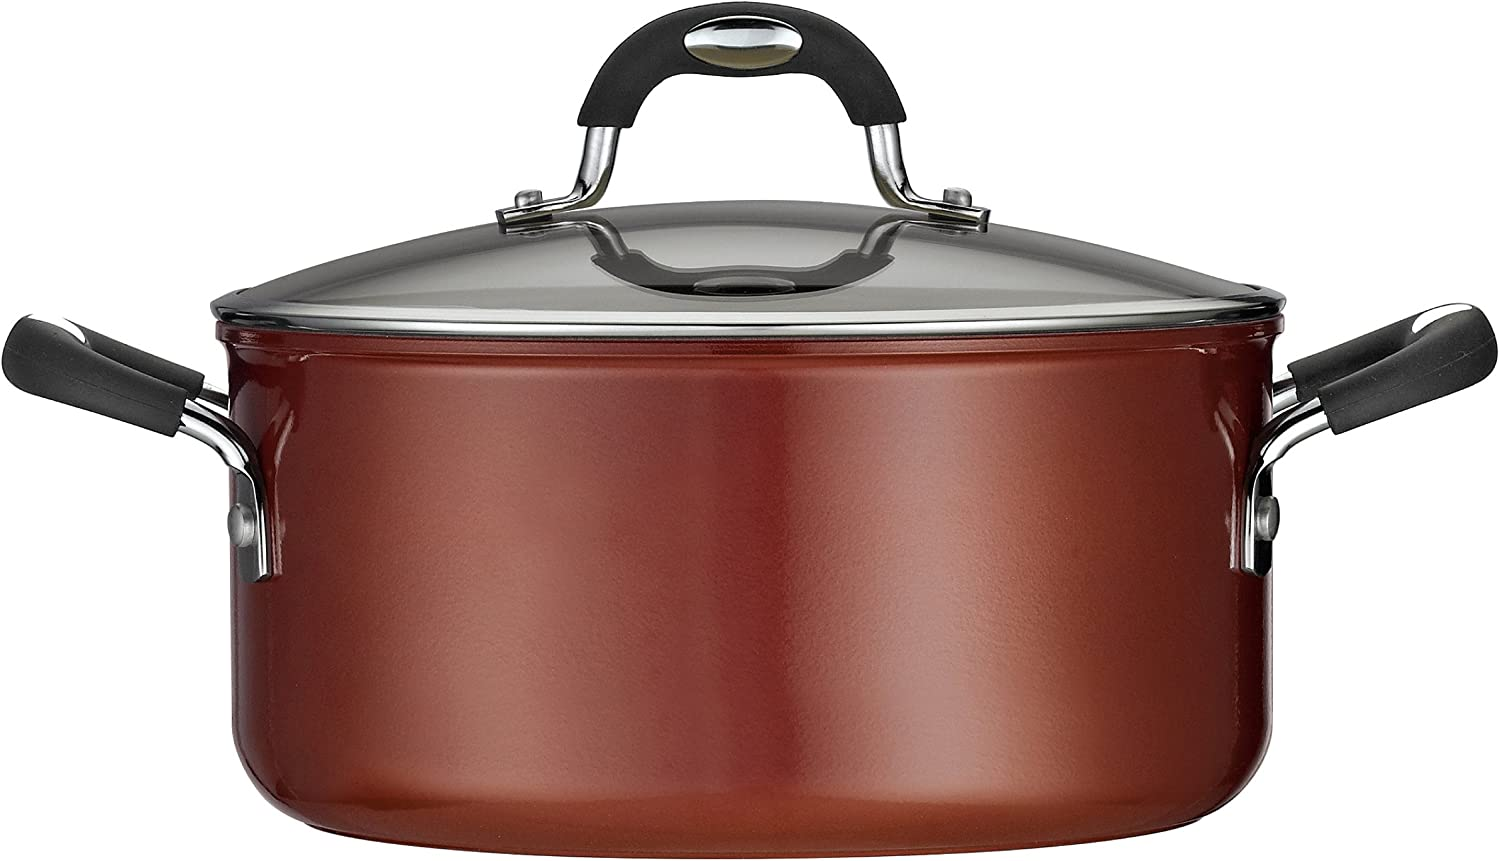 Tramontina 80110 050DS Style Ceramica 01 Covered Dutch Oven, 5-Quart, Metallic Copper